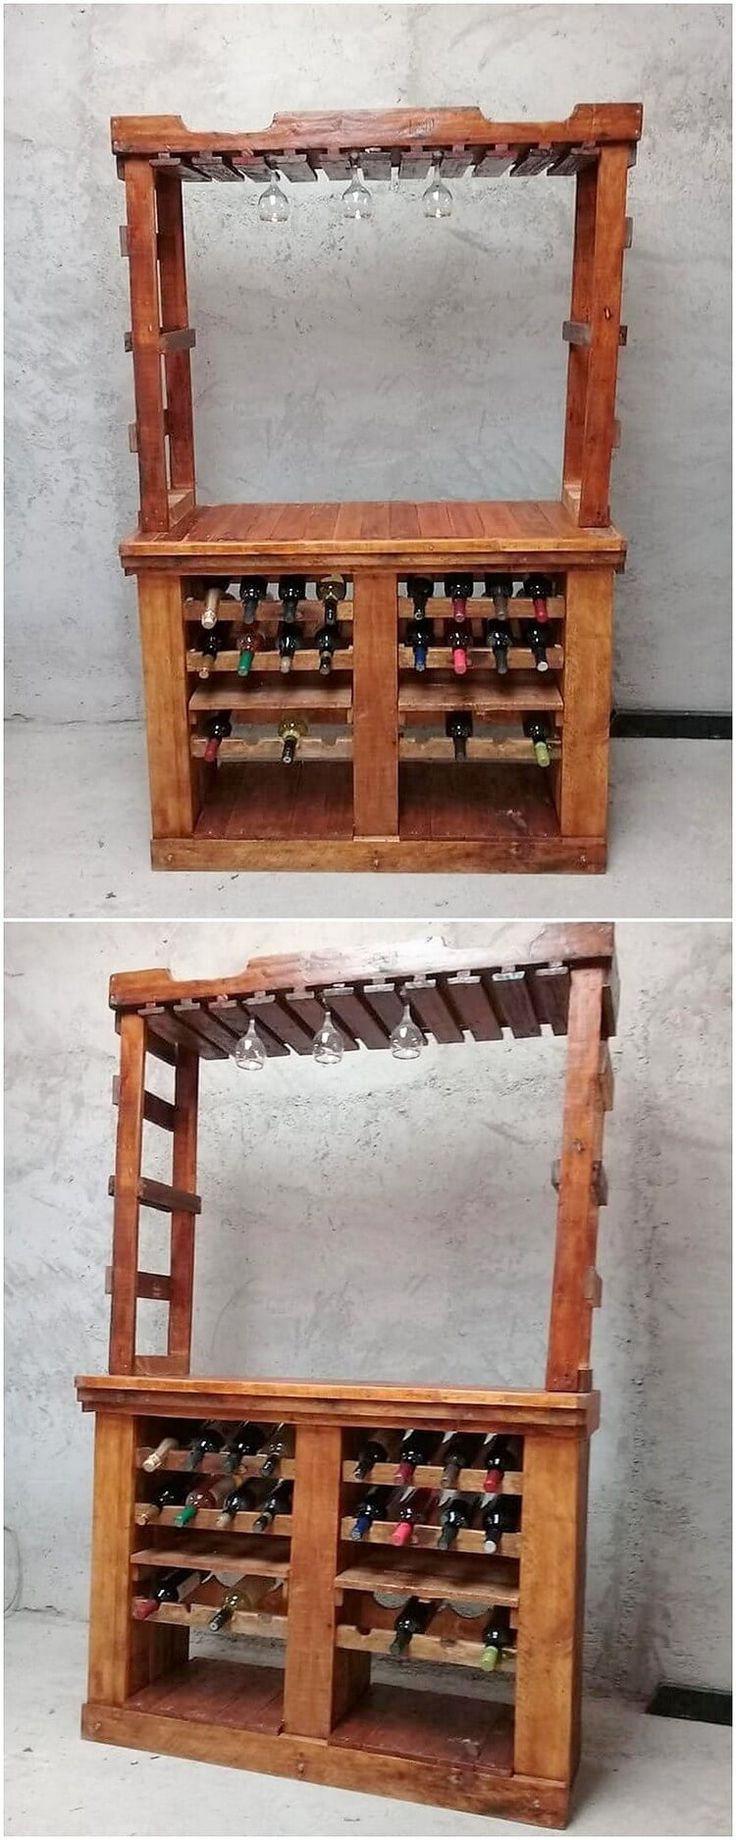 We are sure that checking out this image, will be pleasantly forcing you to add this wine rack framework pallet designing in your house right now. It might be rather simple in designing but locating it in your house will add up inspiring effects. See the image to get some idea!